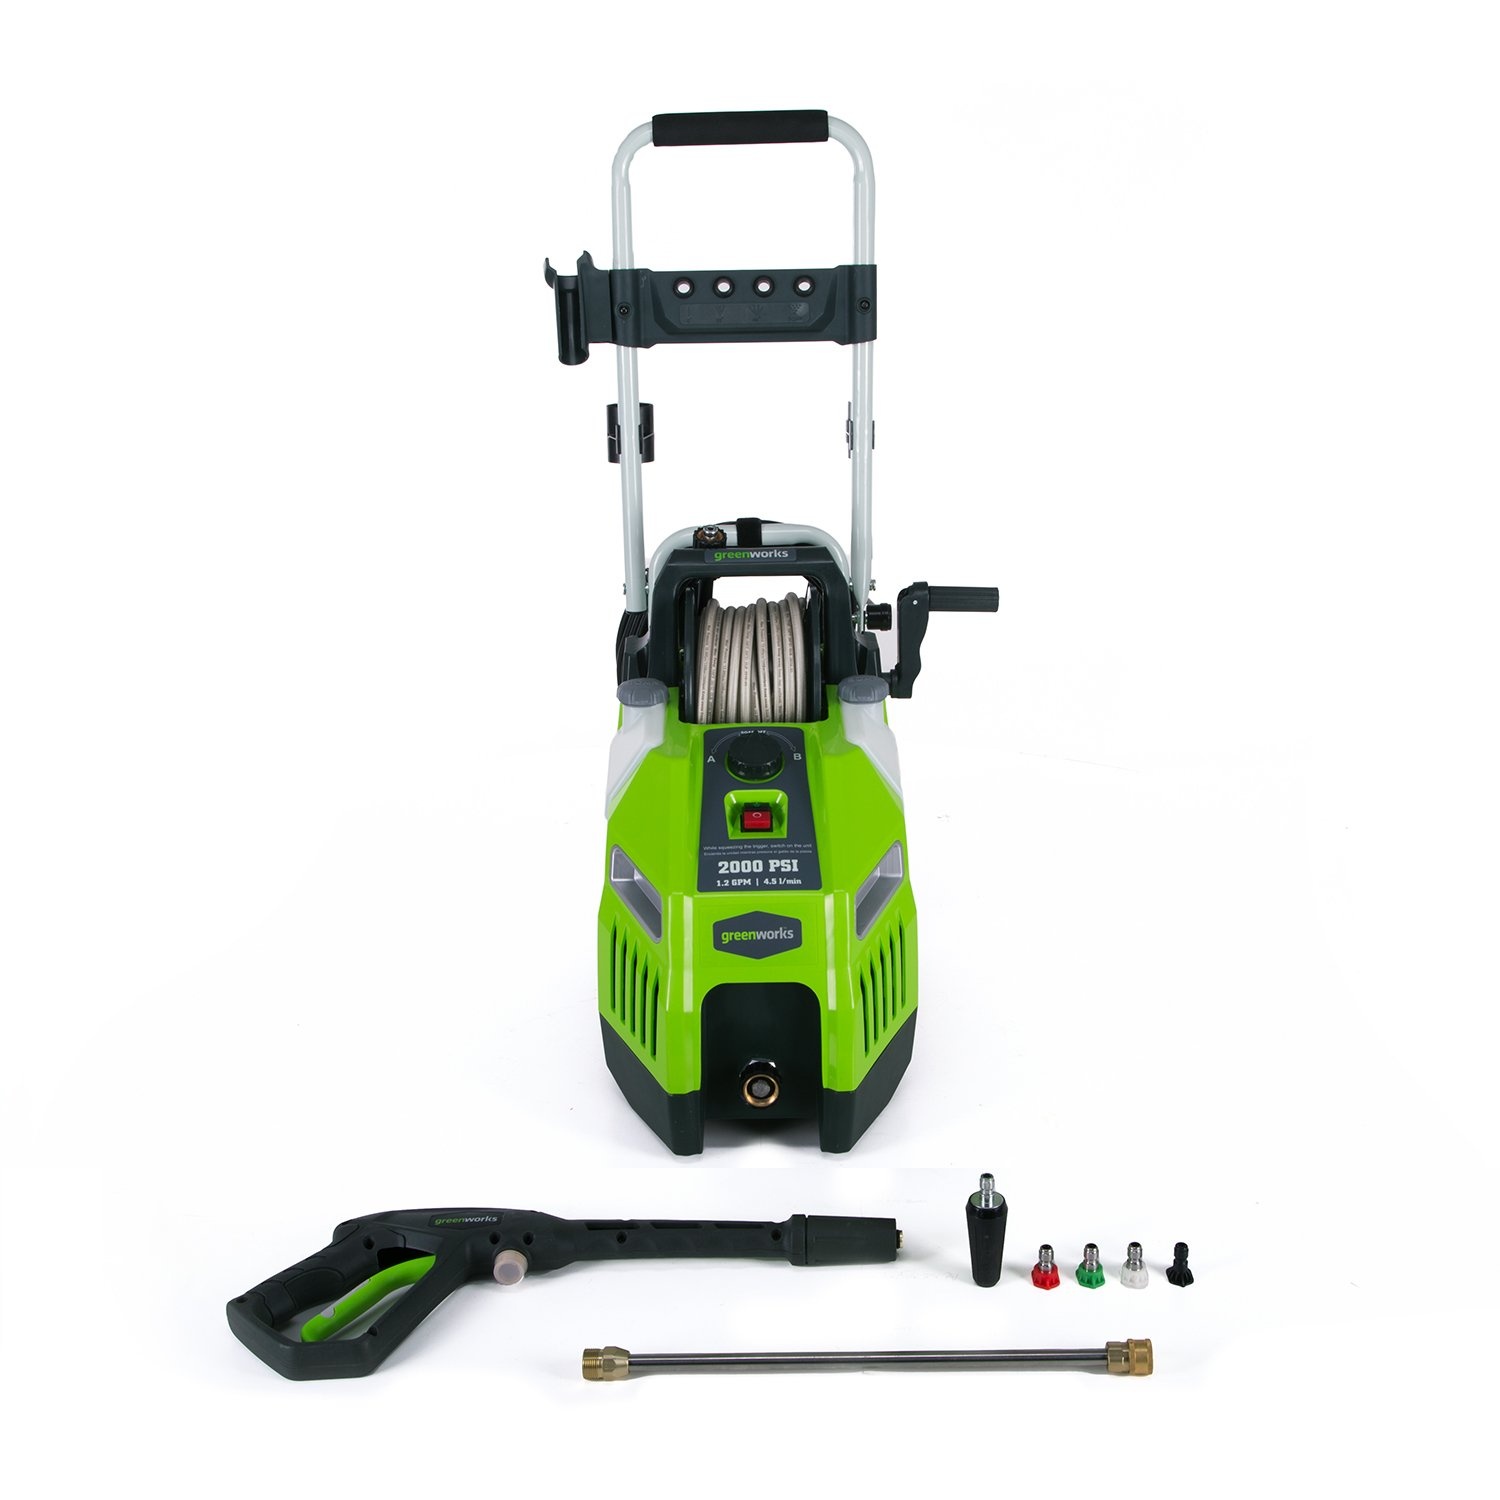 Greenworks 2000 PSI 13 Amp 1.2 GPM Pressure Washer with Hose Reel GPW2001 by Greenworks (Image #1)